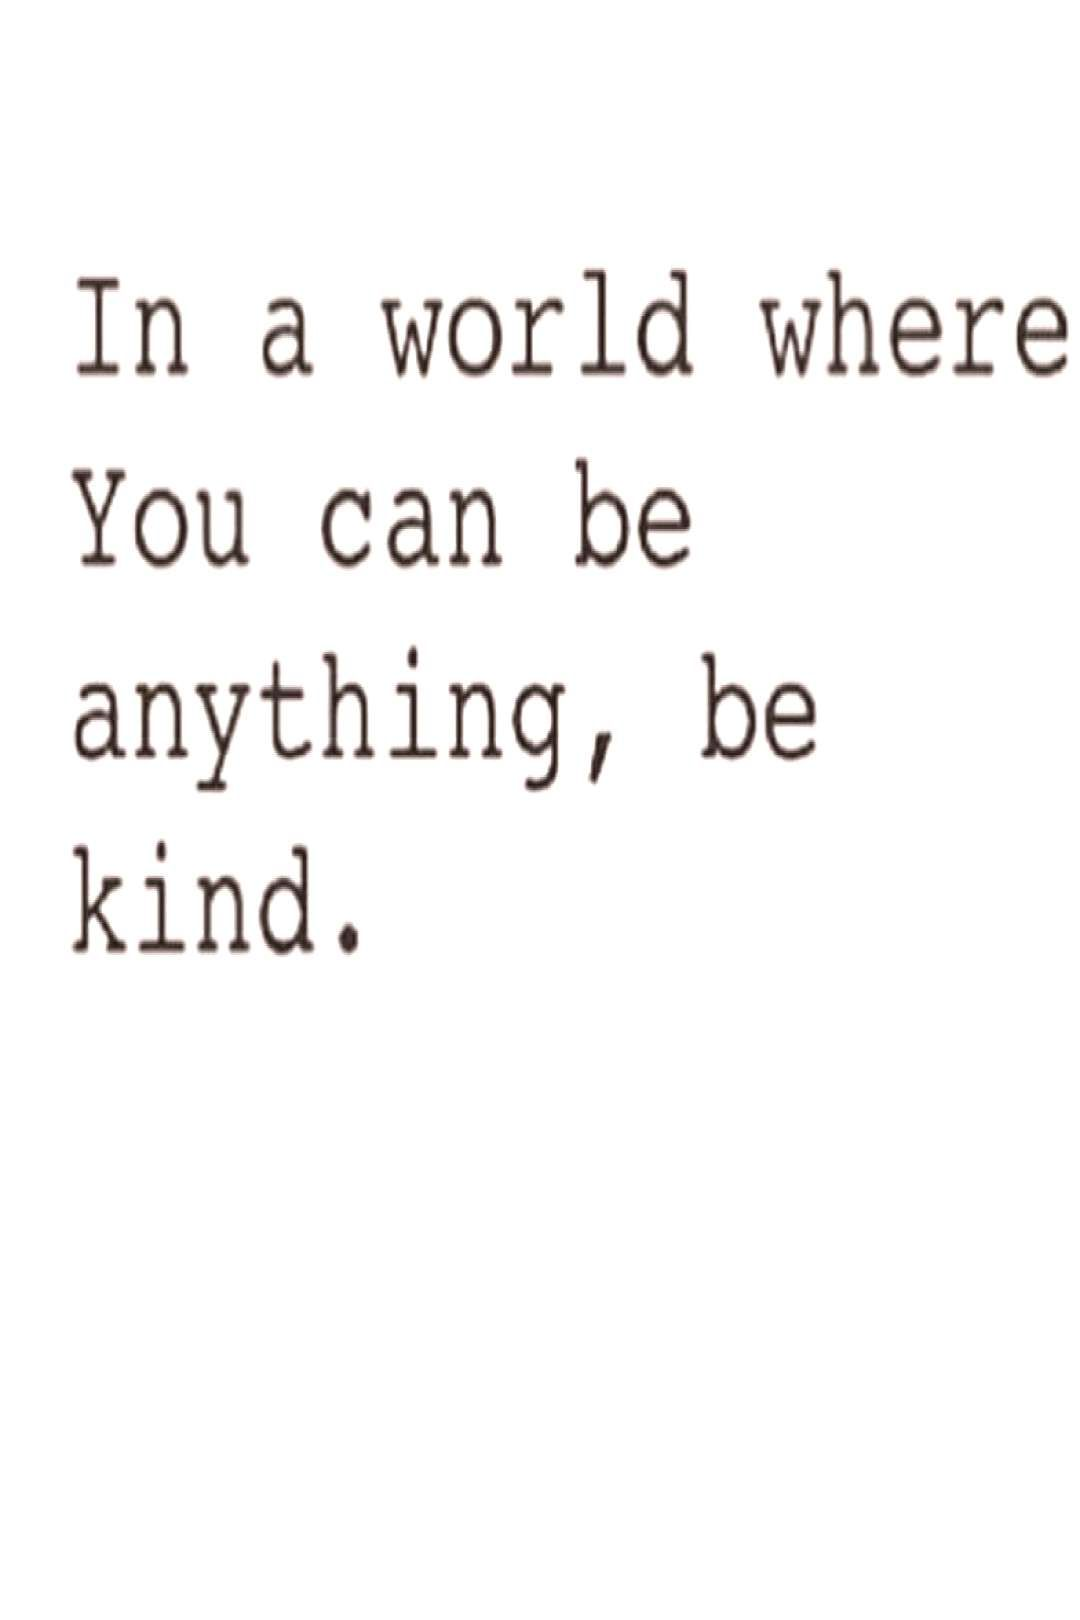 #anythingbe #everyone #possible #person #please #cause #never #where #world #kind #says #text #what #know #that Please be kind to everyone cause u never know what is that personYou can find Ha...